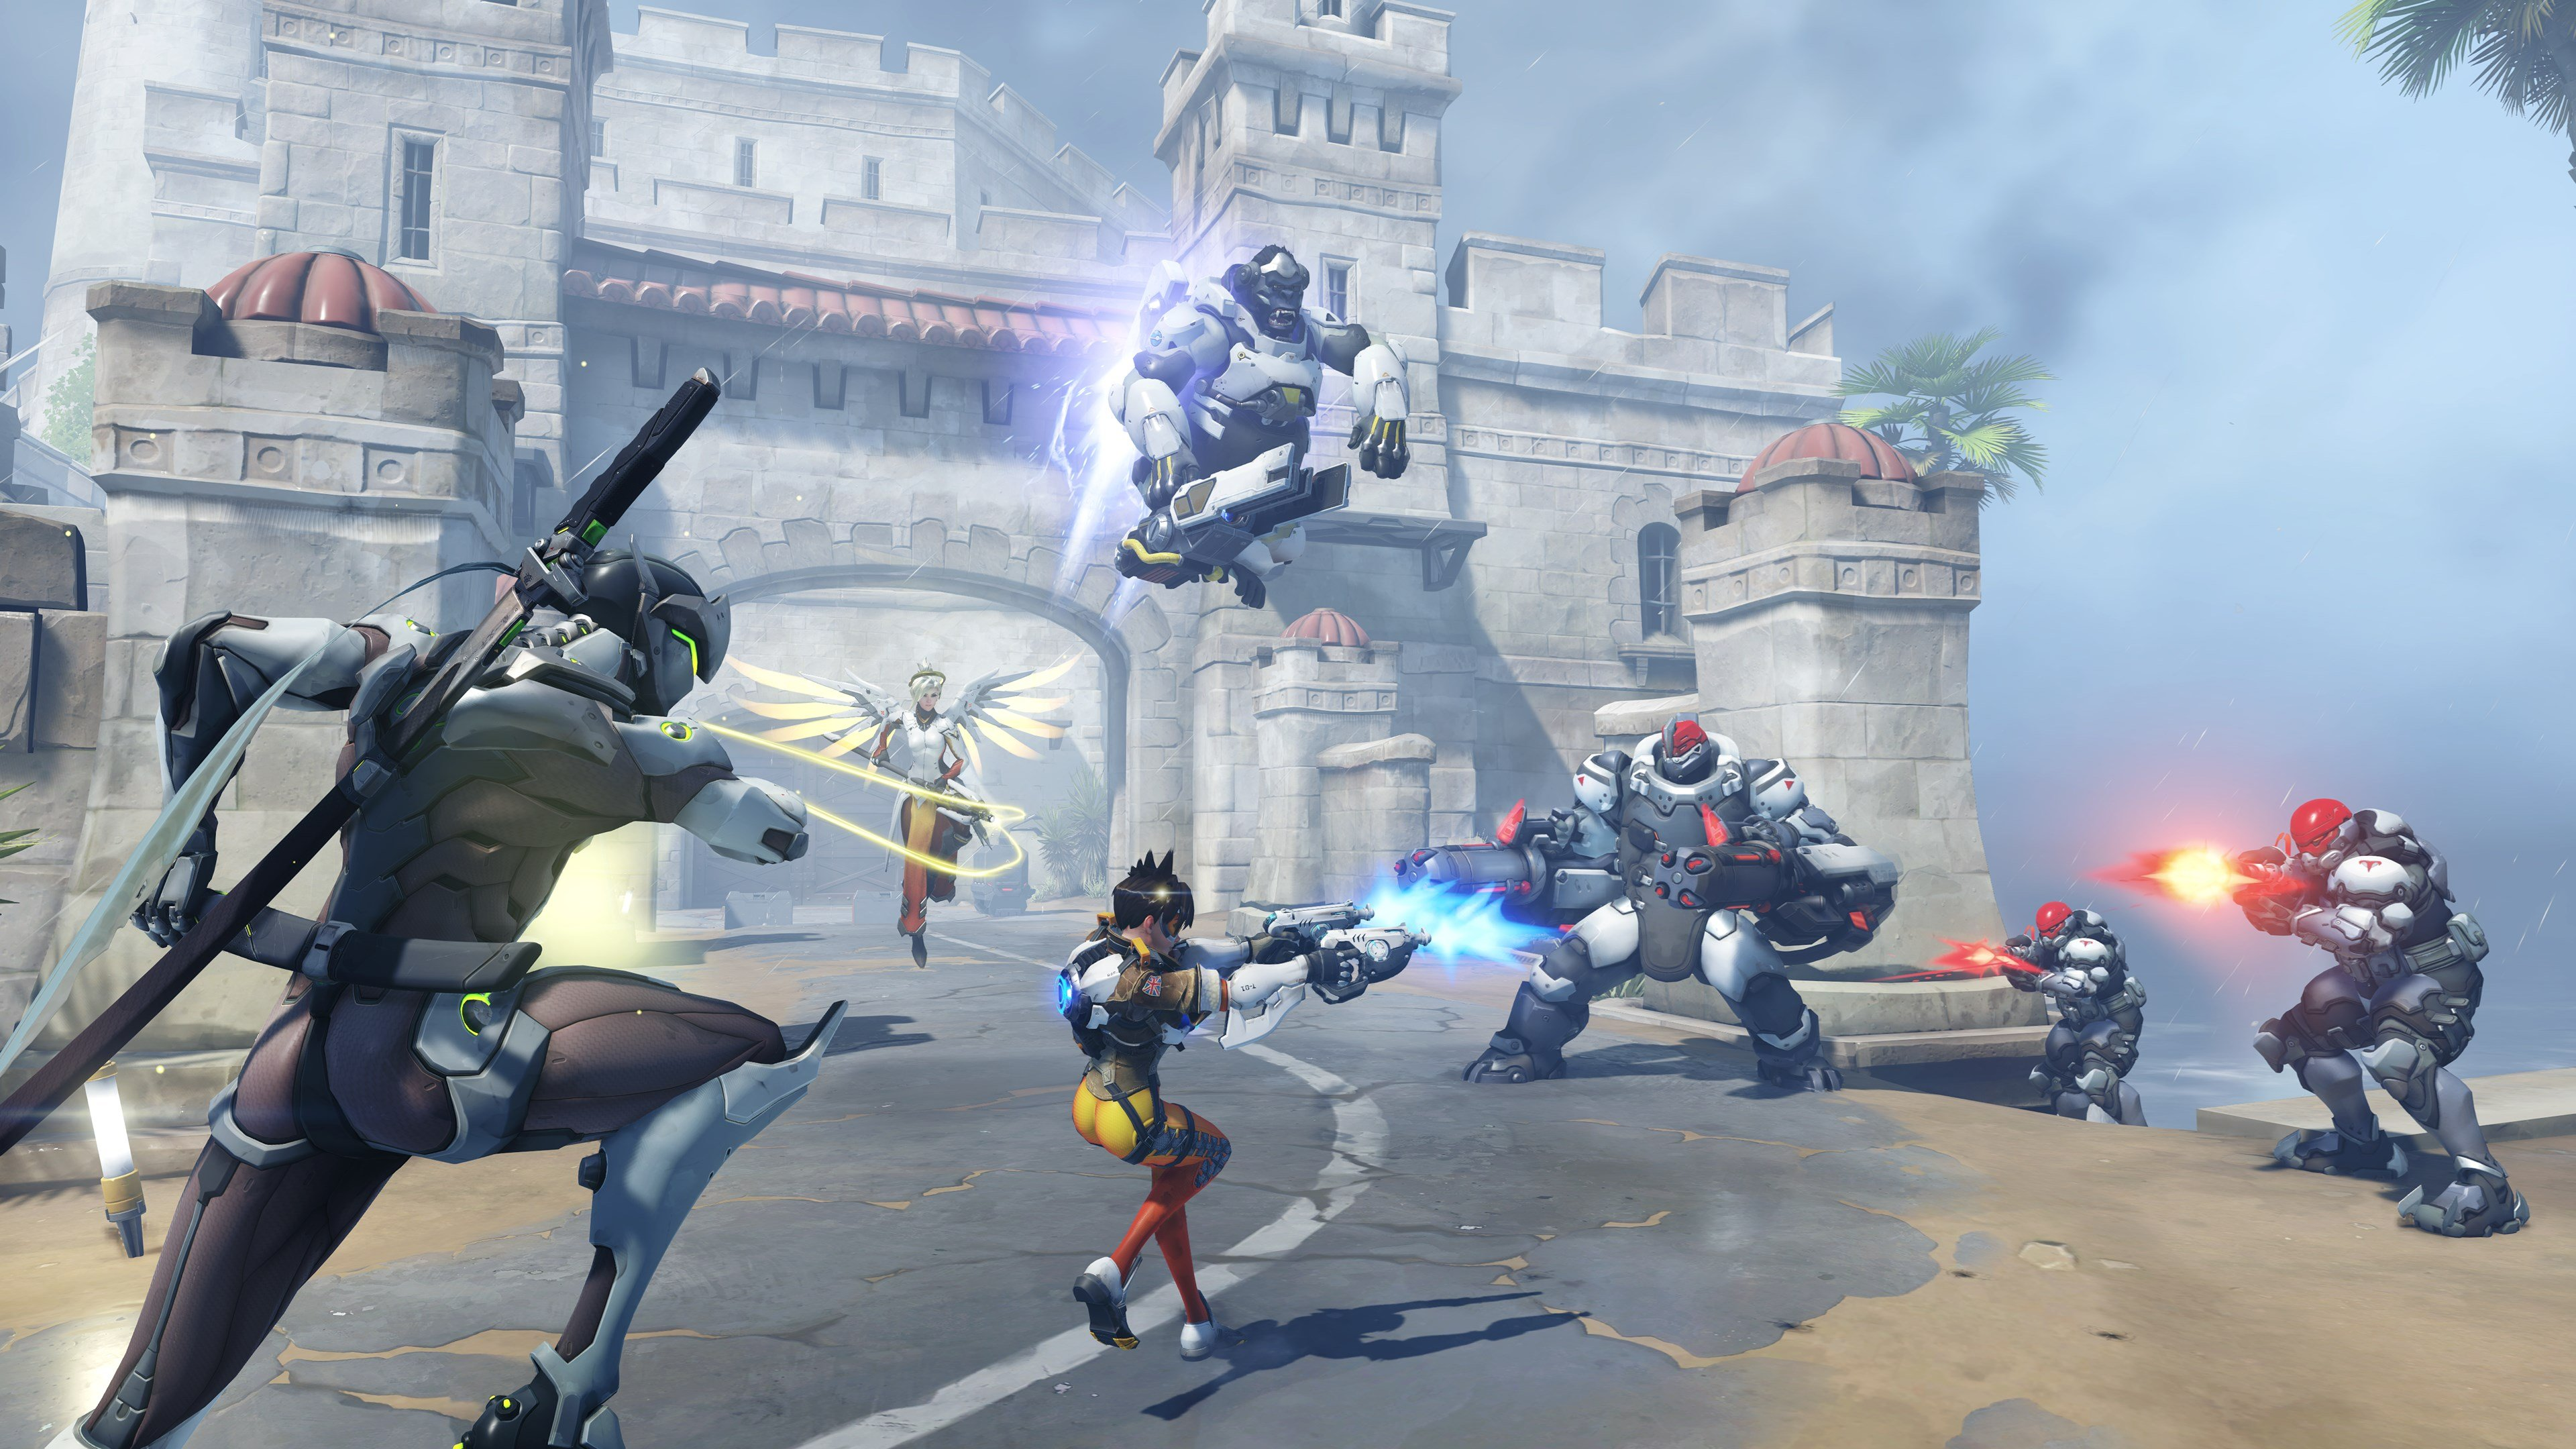 Several leaks confirm Overwatch will be announced on Switch today, coming next month screenshot